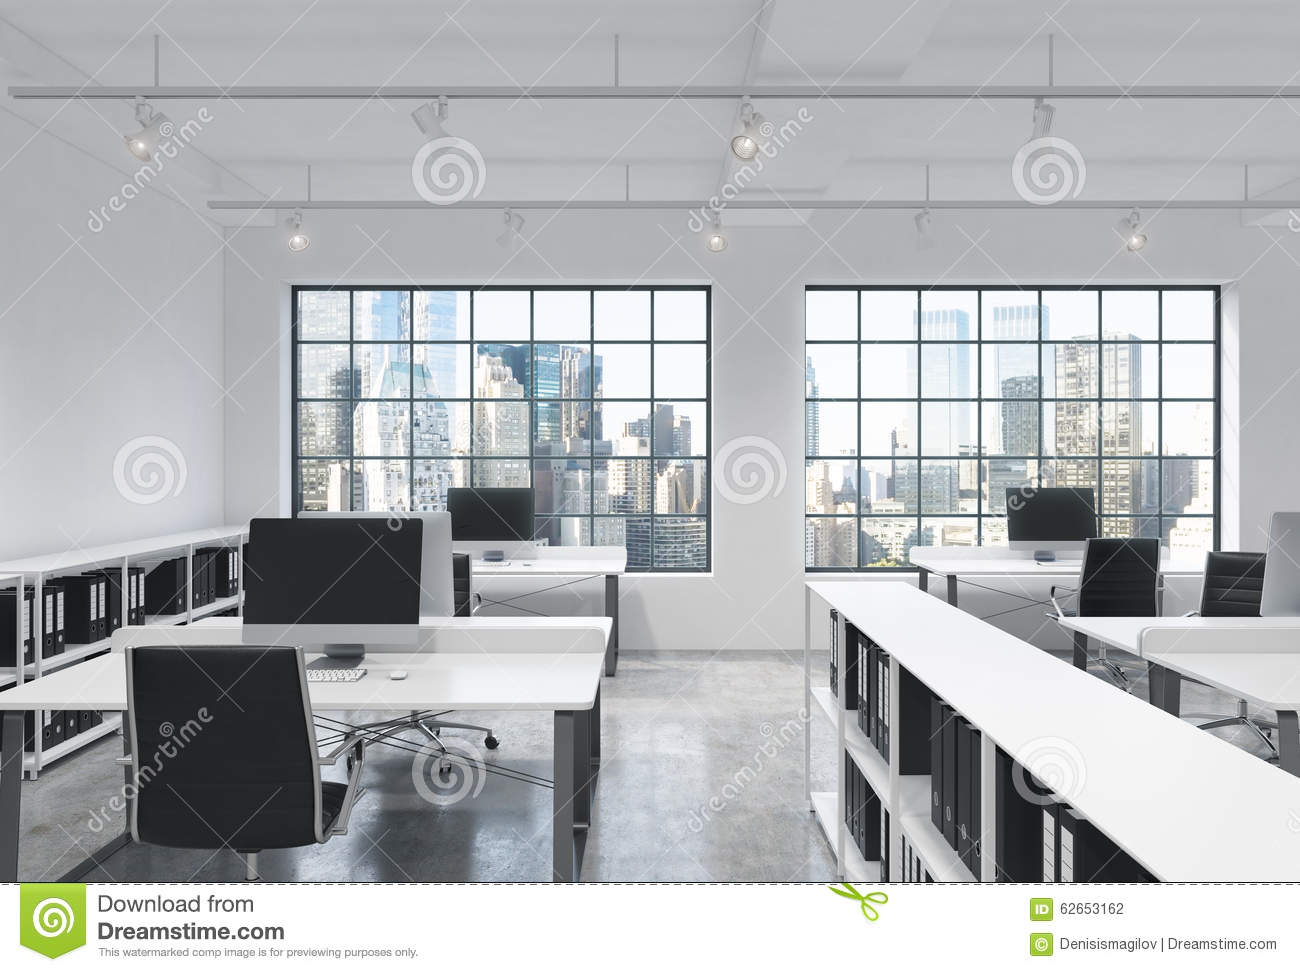 Modern Loft workplaces in a bright modern loft open space office. tables are